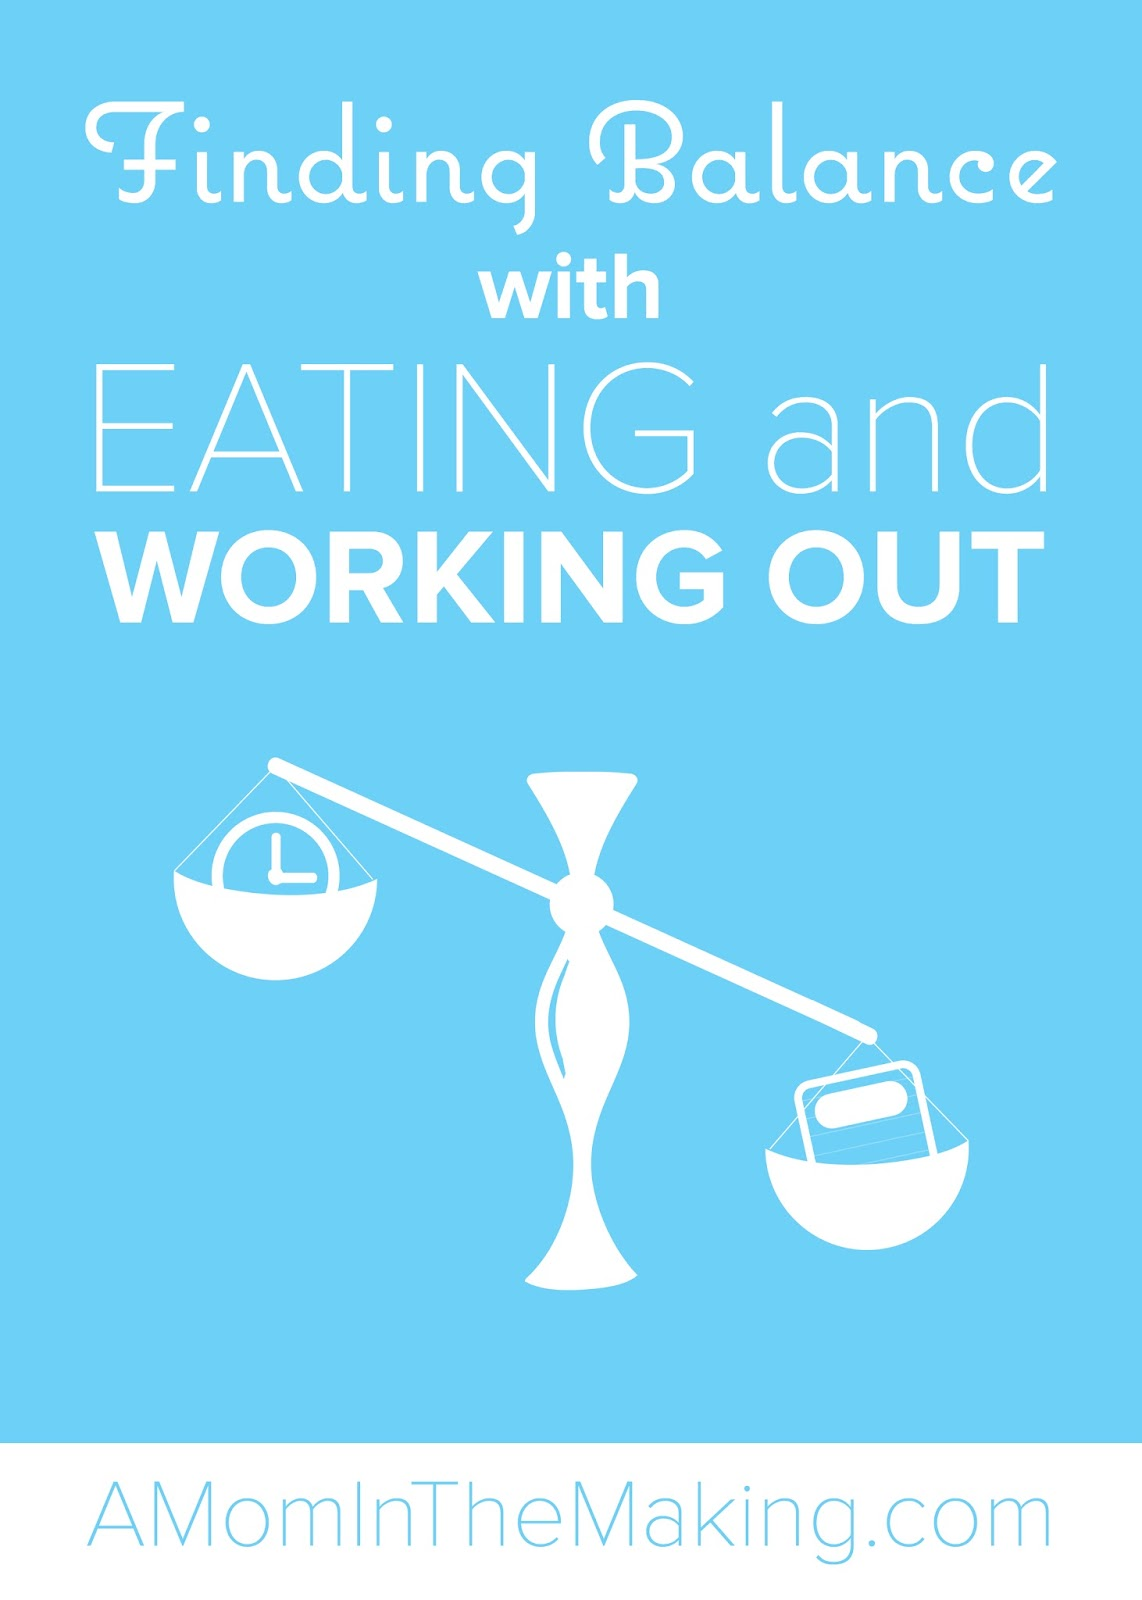 Finding Balance with Eating and Working Out